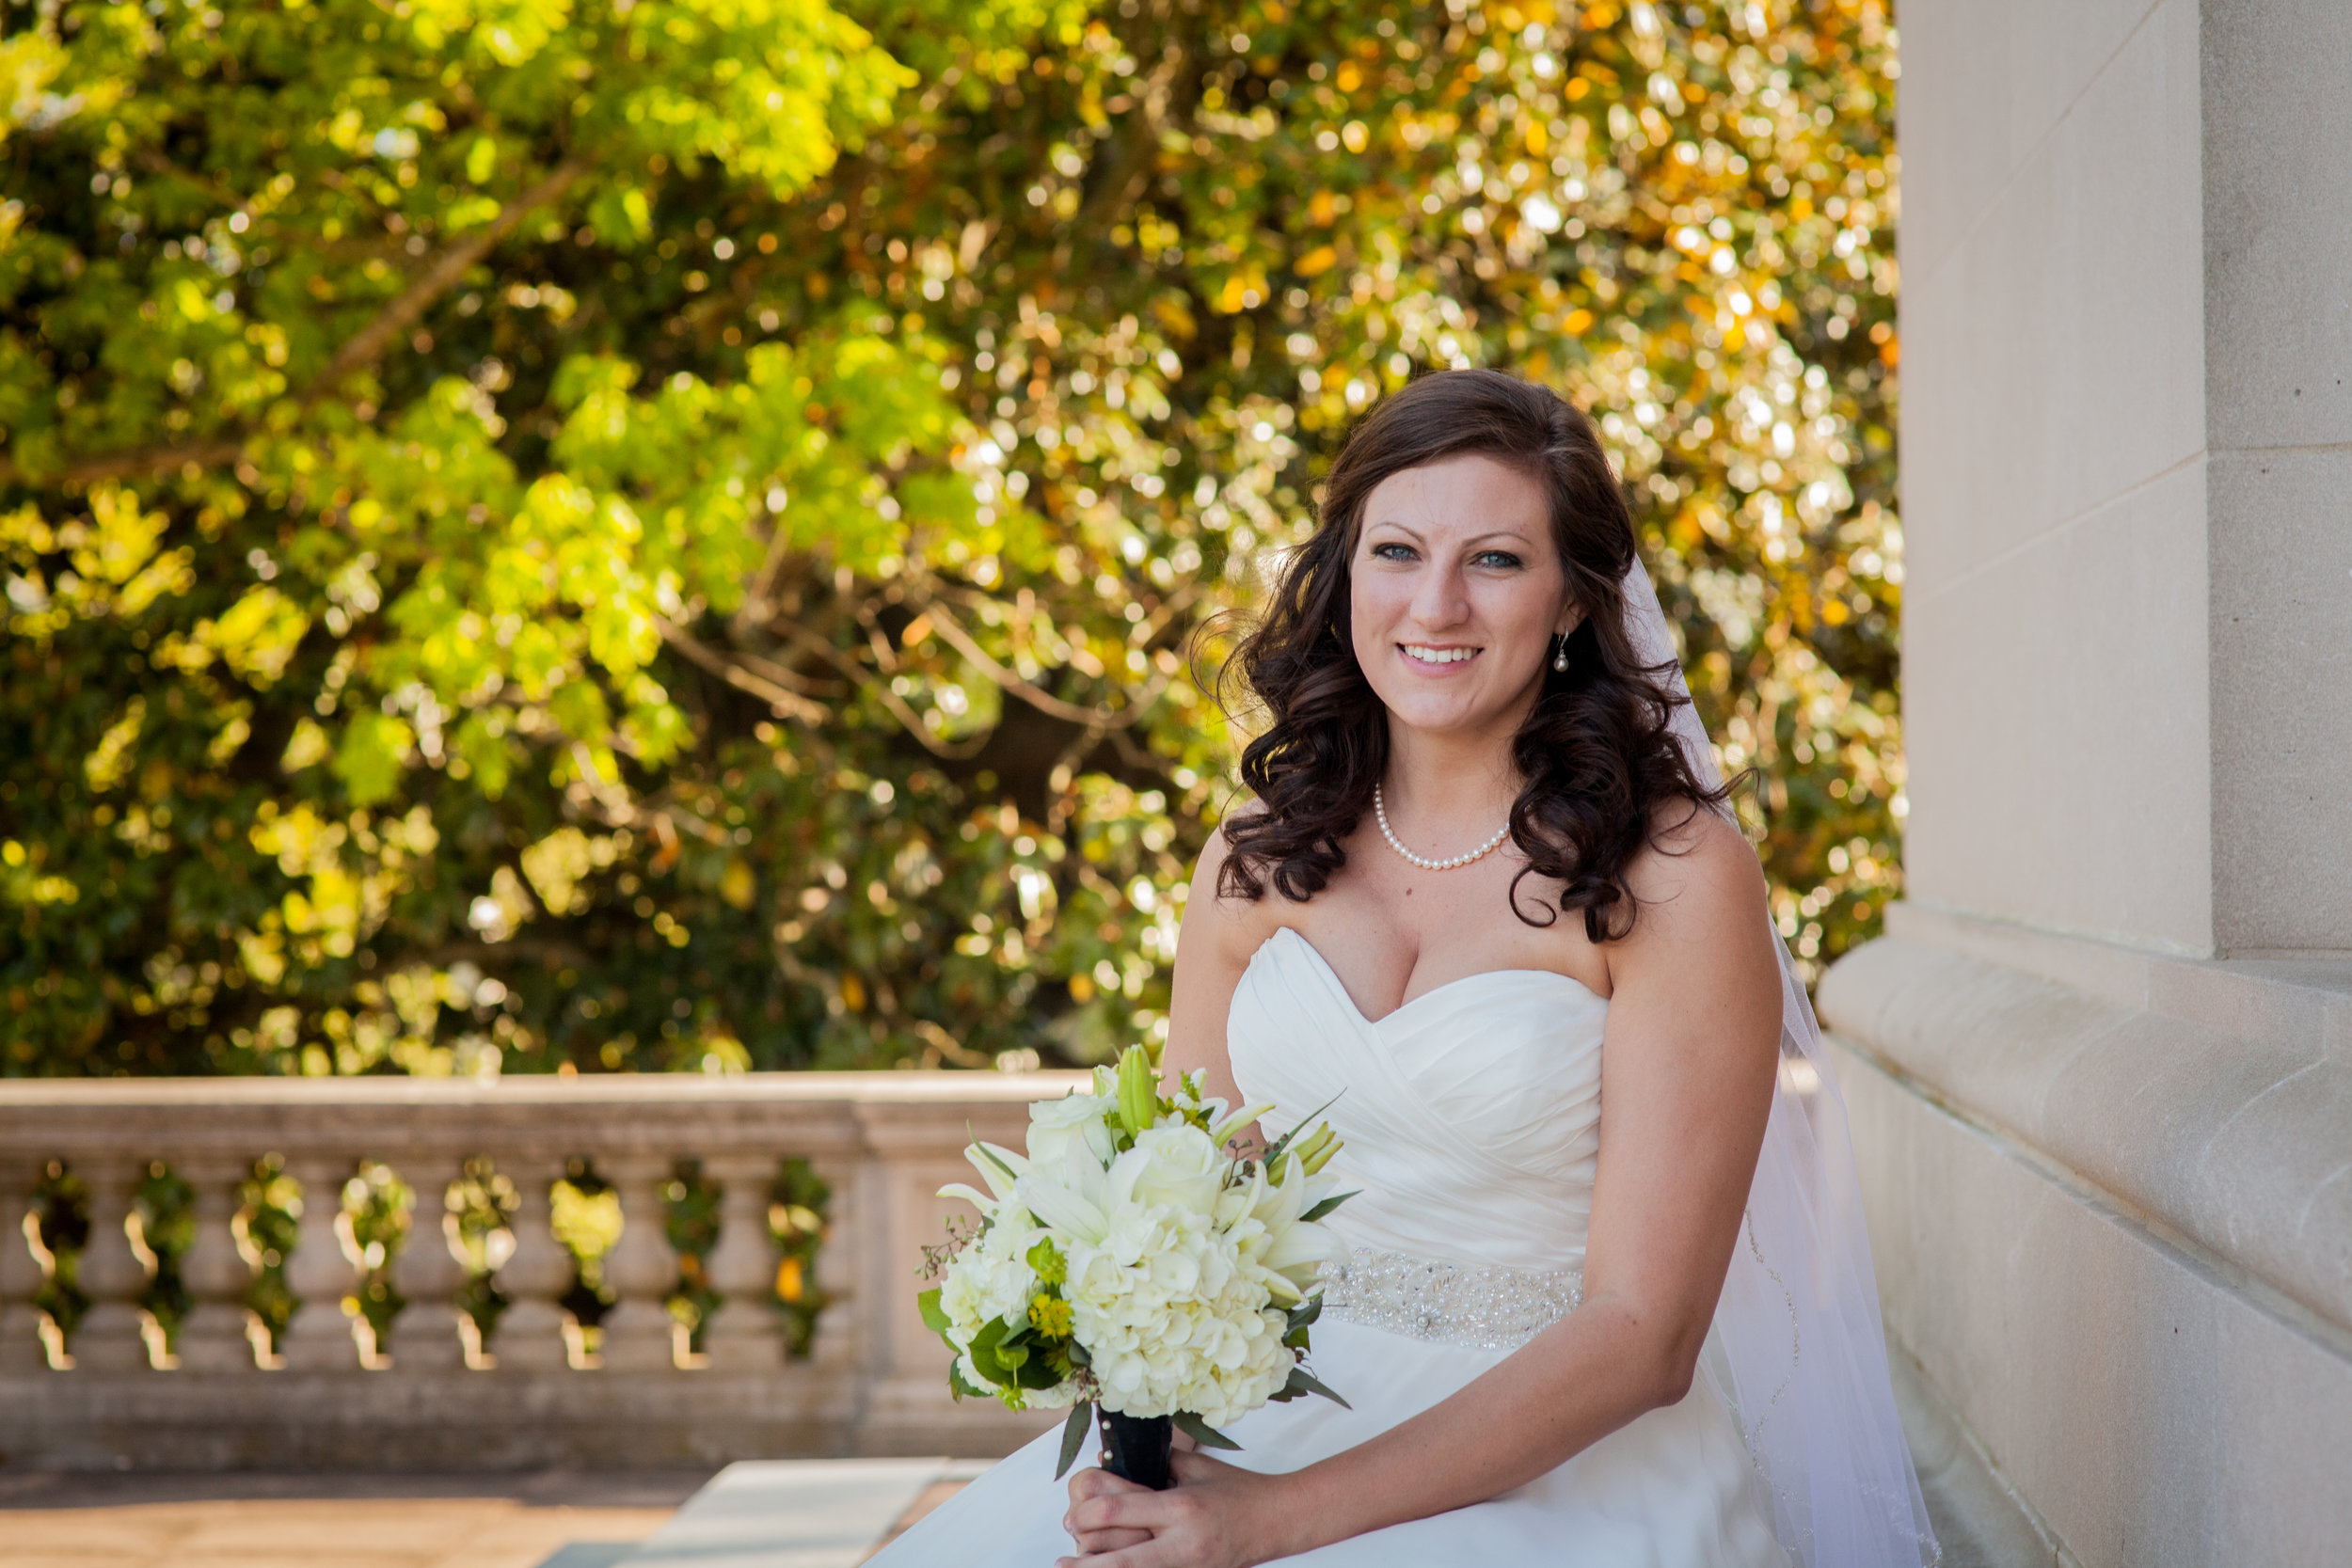 Bride-Carillon-Richmond-Virginia.jpg